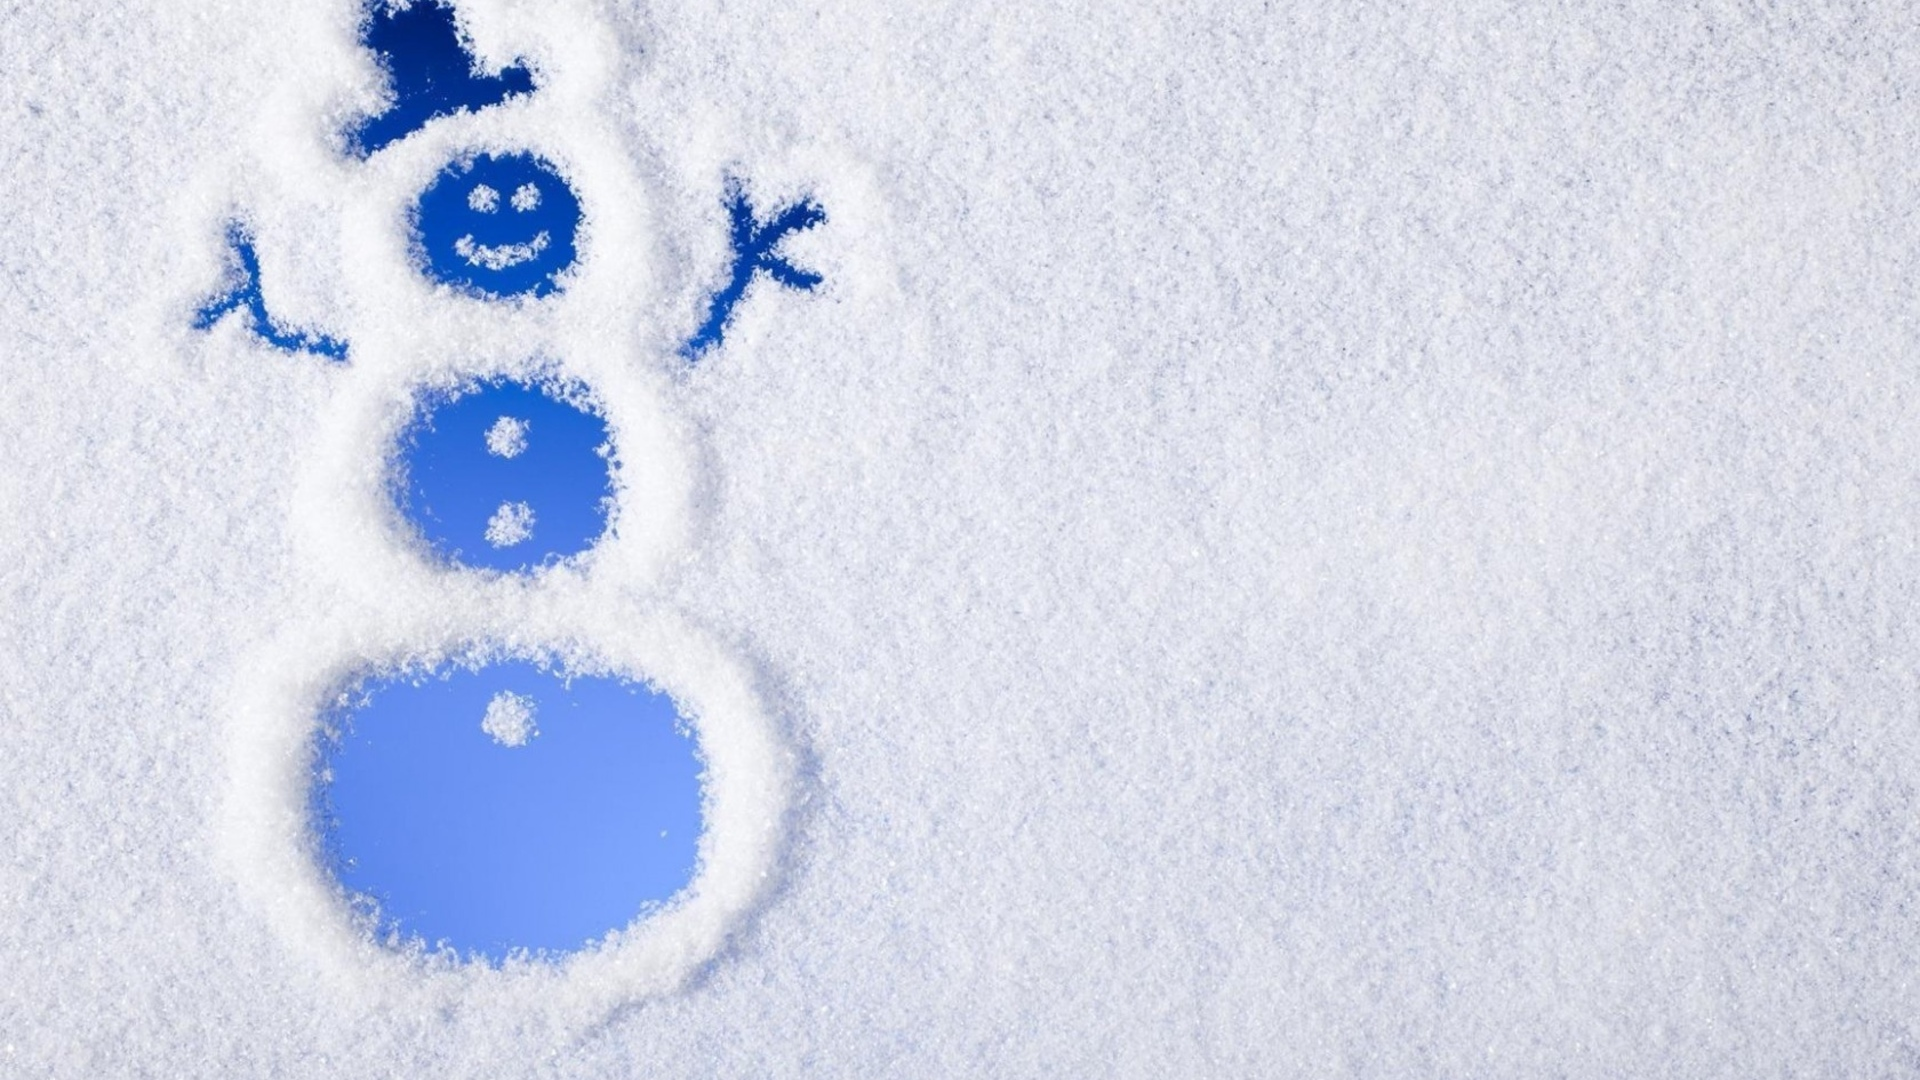 Snow Man Wallpaper High Definition